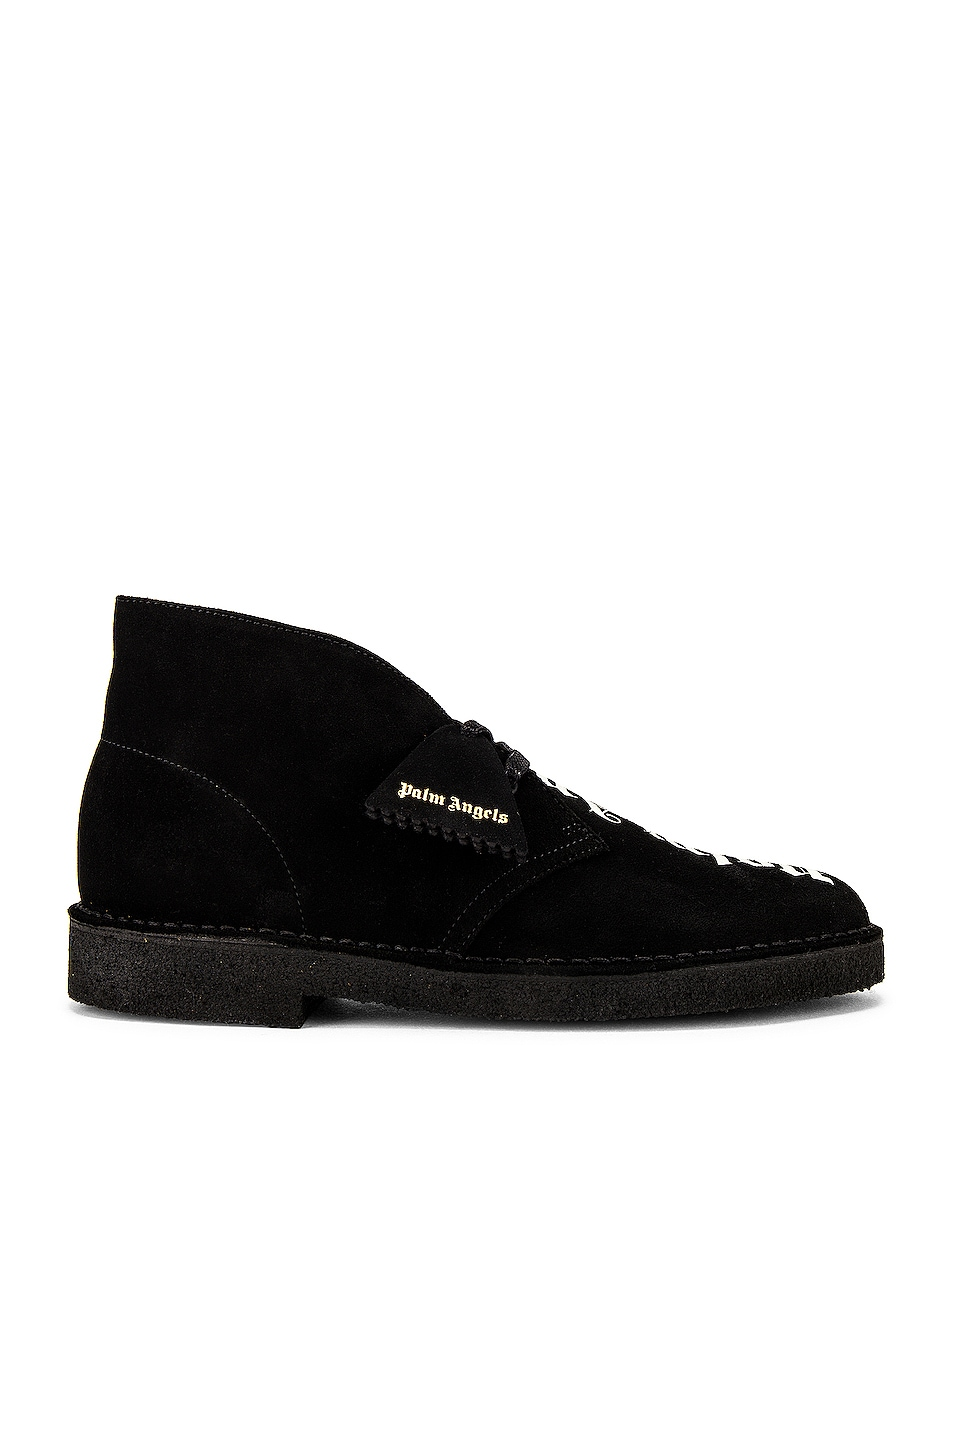 Image 1 of Palm Angels Logo Desert Boots in Black & White